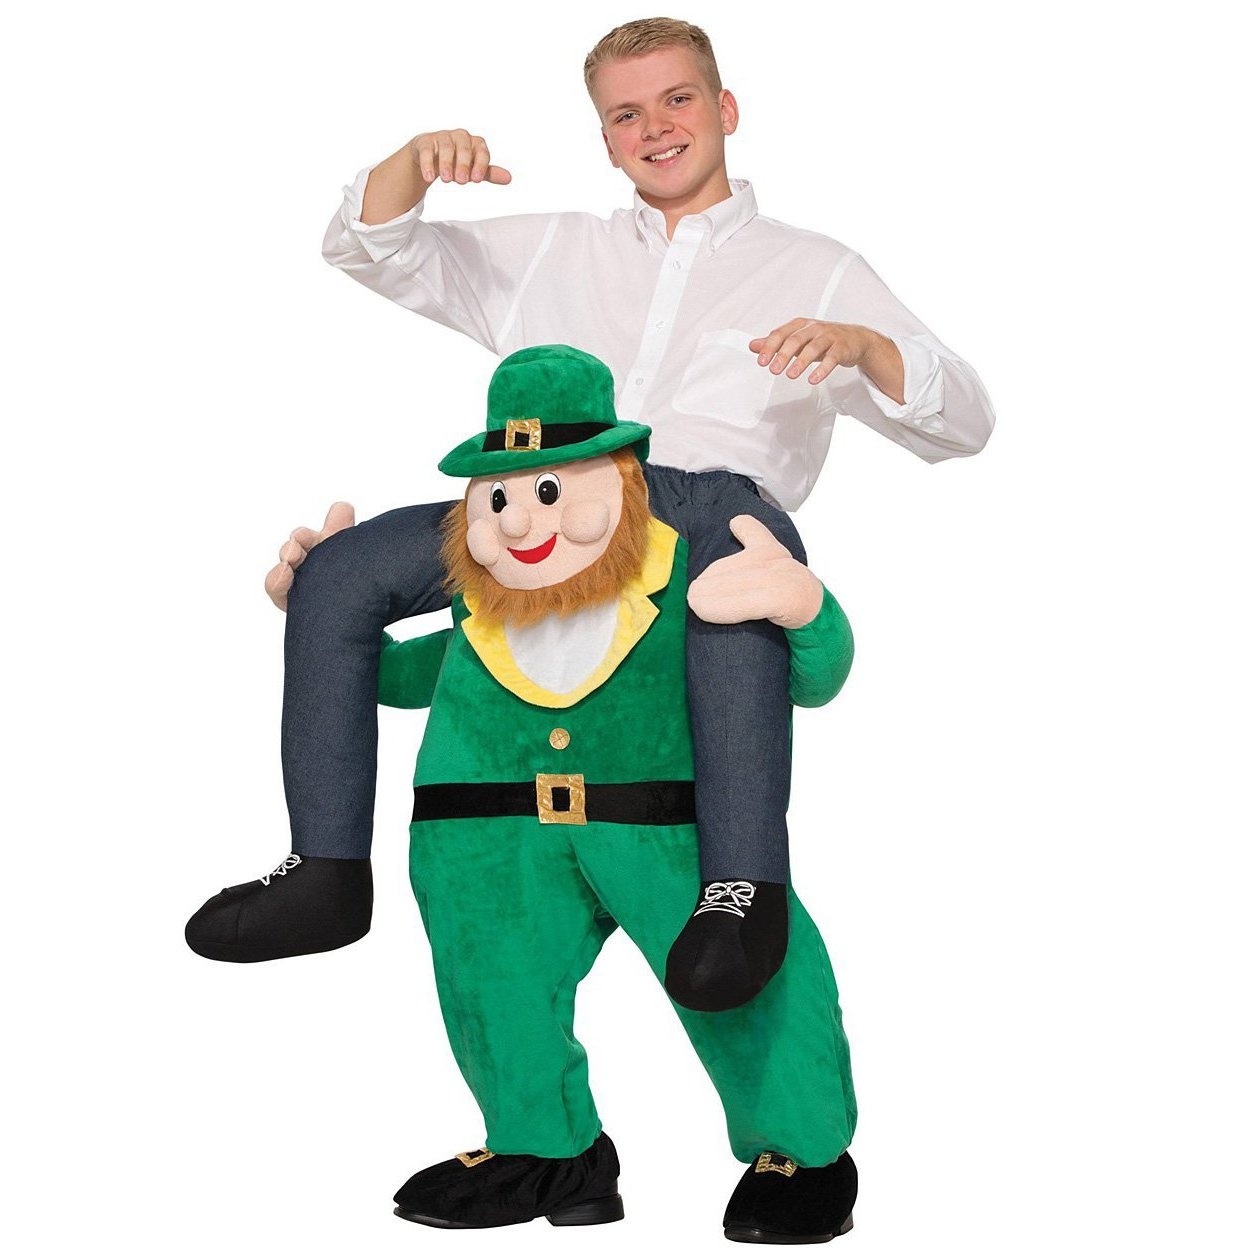 St. Patrick's Day Piggyback Ride On Costumes